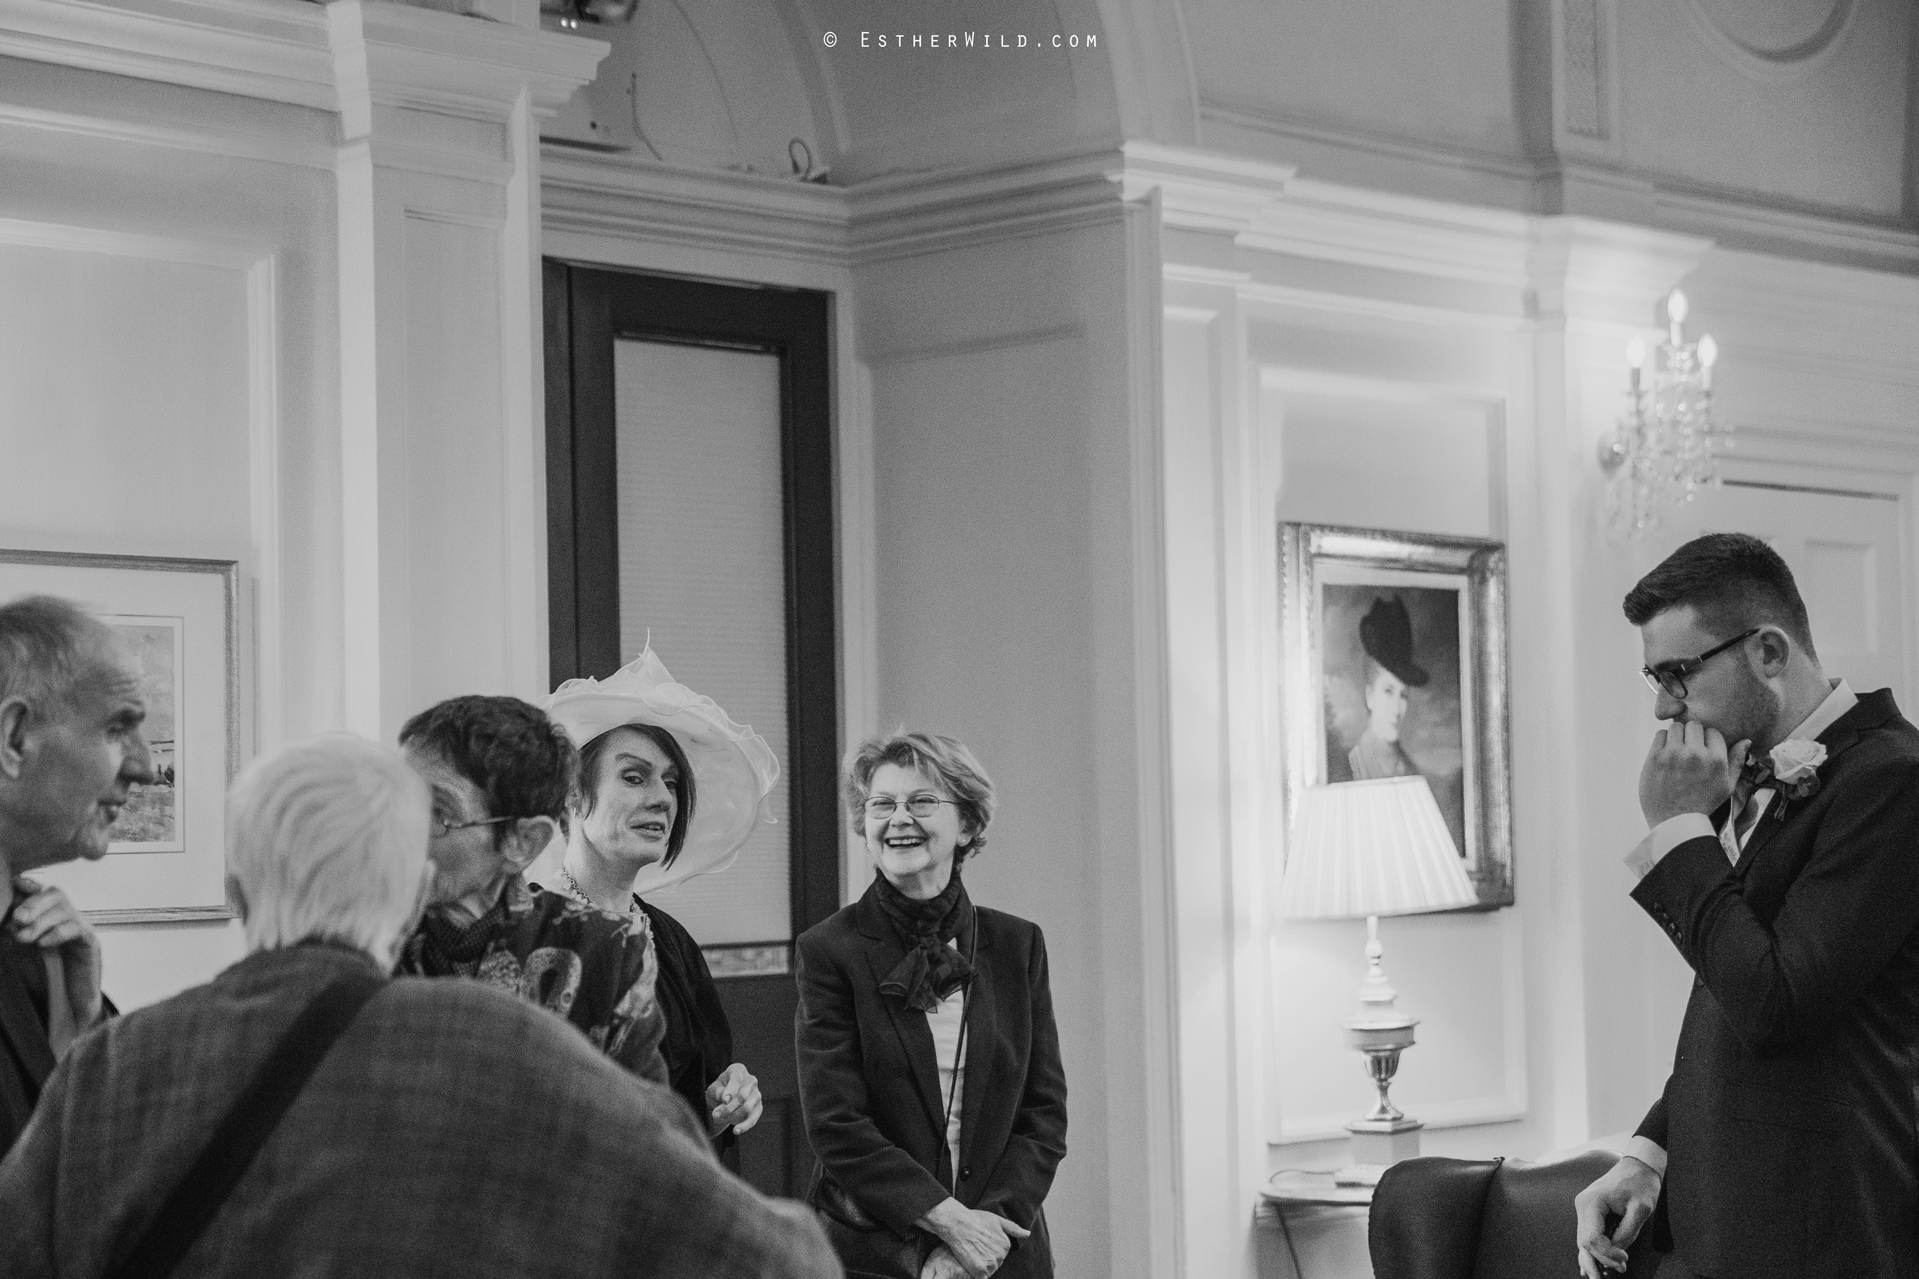 Norwich_Assembly_House_Wedding_Esther_Wild_Photographer_IMG_3720-1.jpg